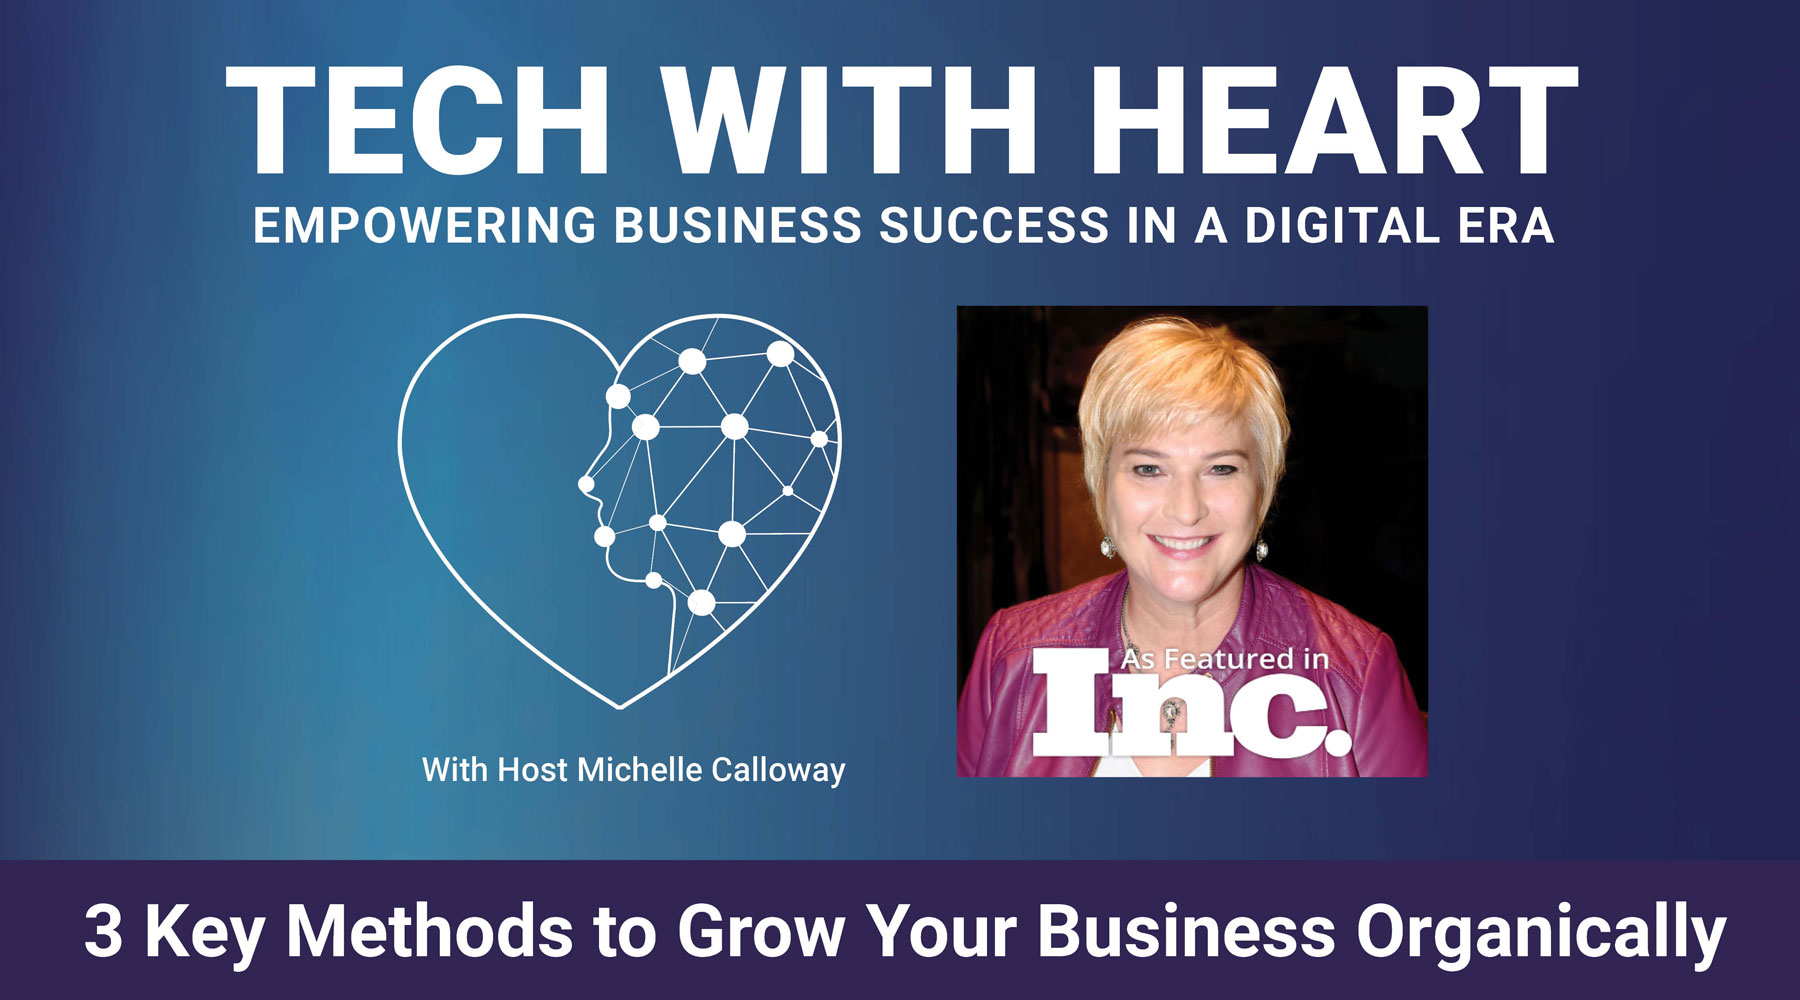 3 Key Methods to Grow Your Business Organically with Michelle Calloway